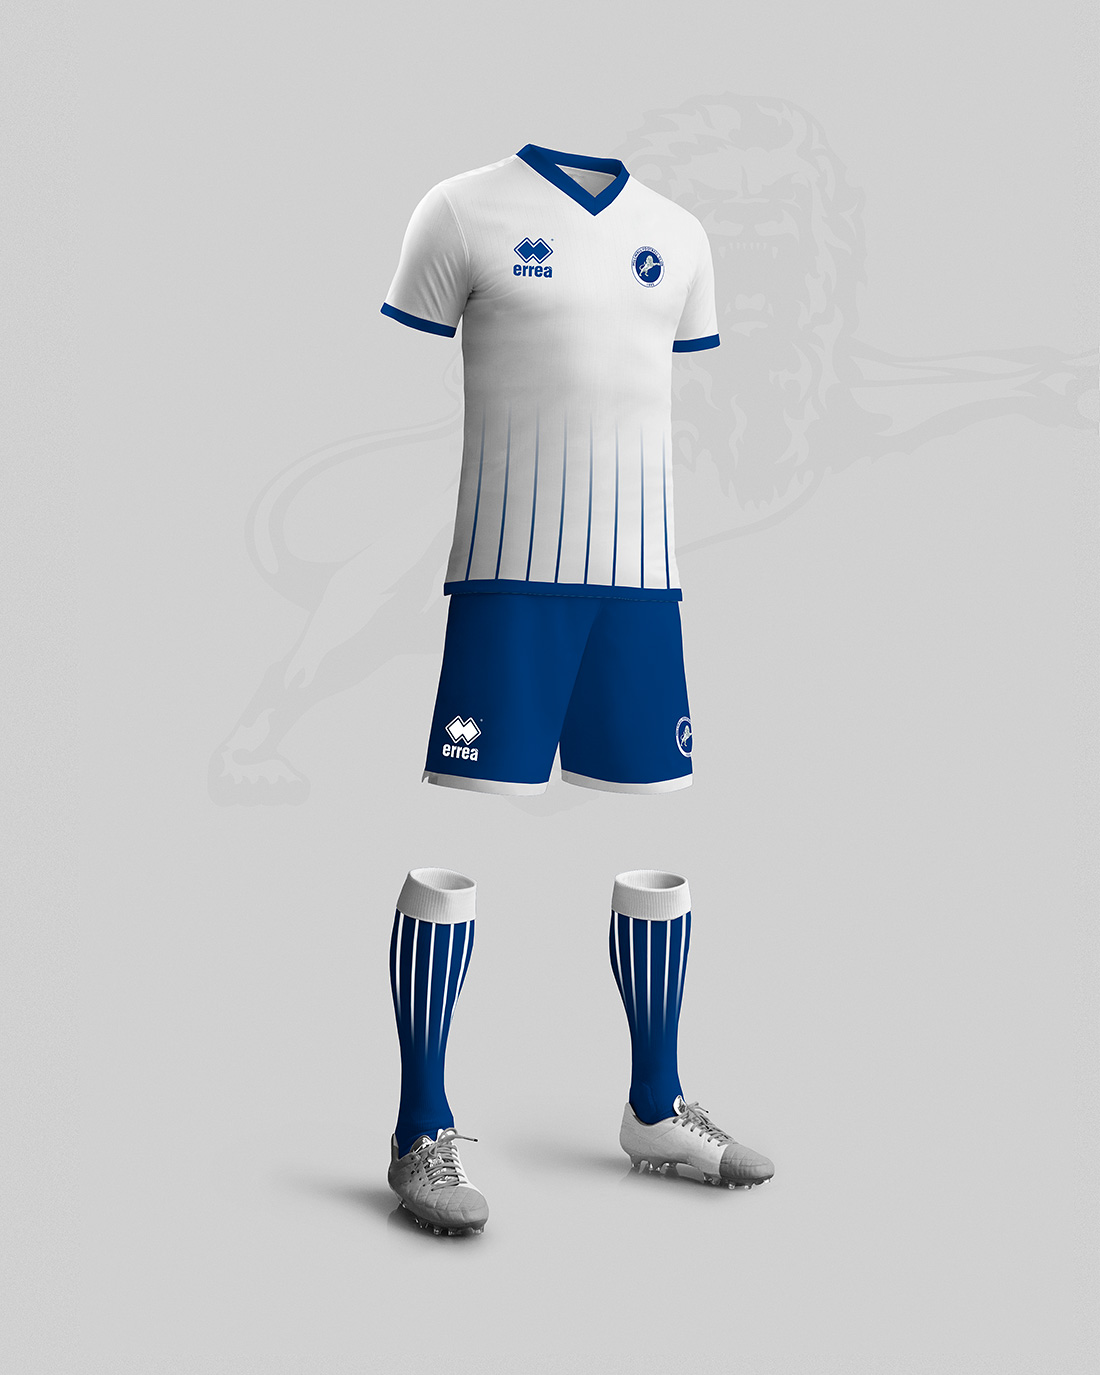 https://ponad.pl/wp-content/uploads/2016/04/millwall-home-away-kit-design.jpg